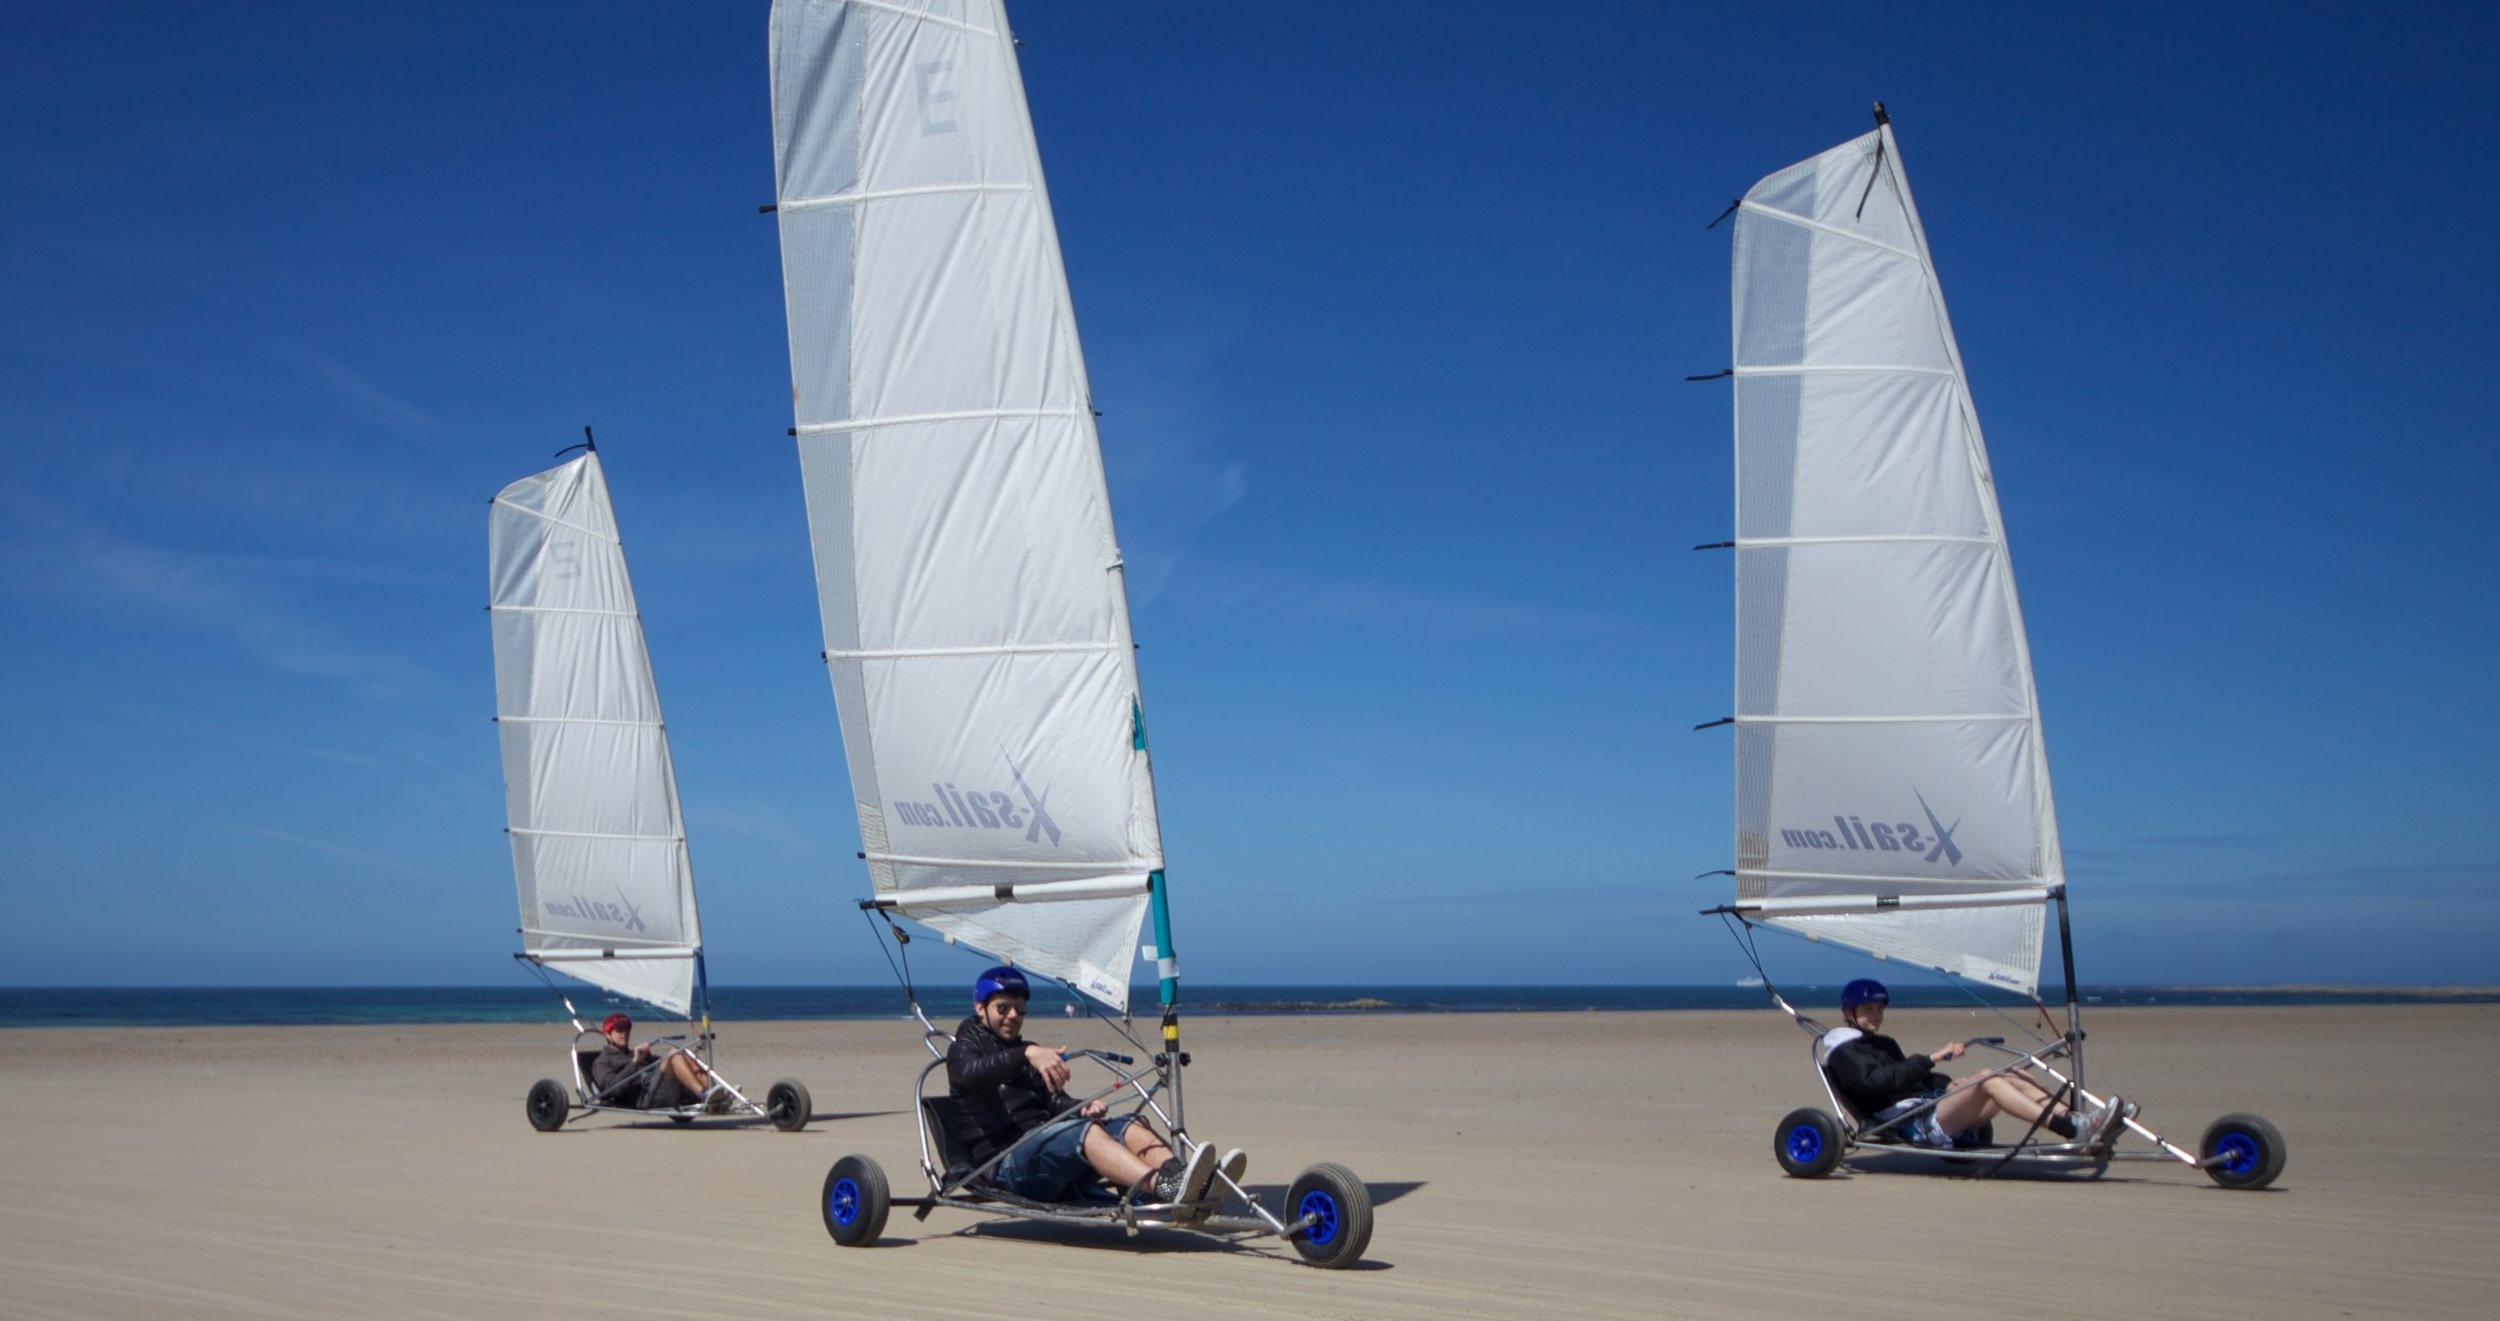 Do you want to feel the wind in your hair as you zoom up and down the beach in one of our Blokarts?